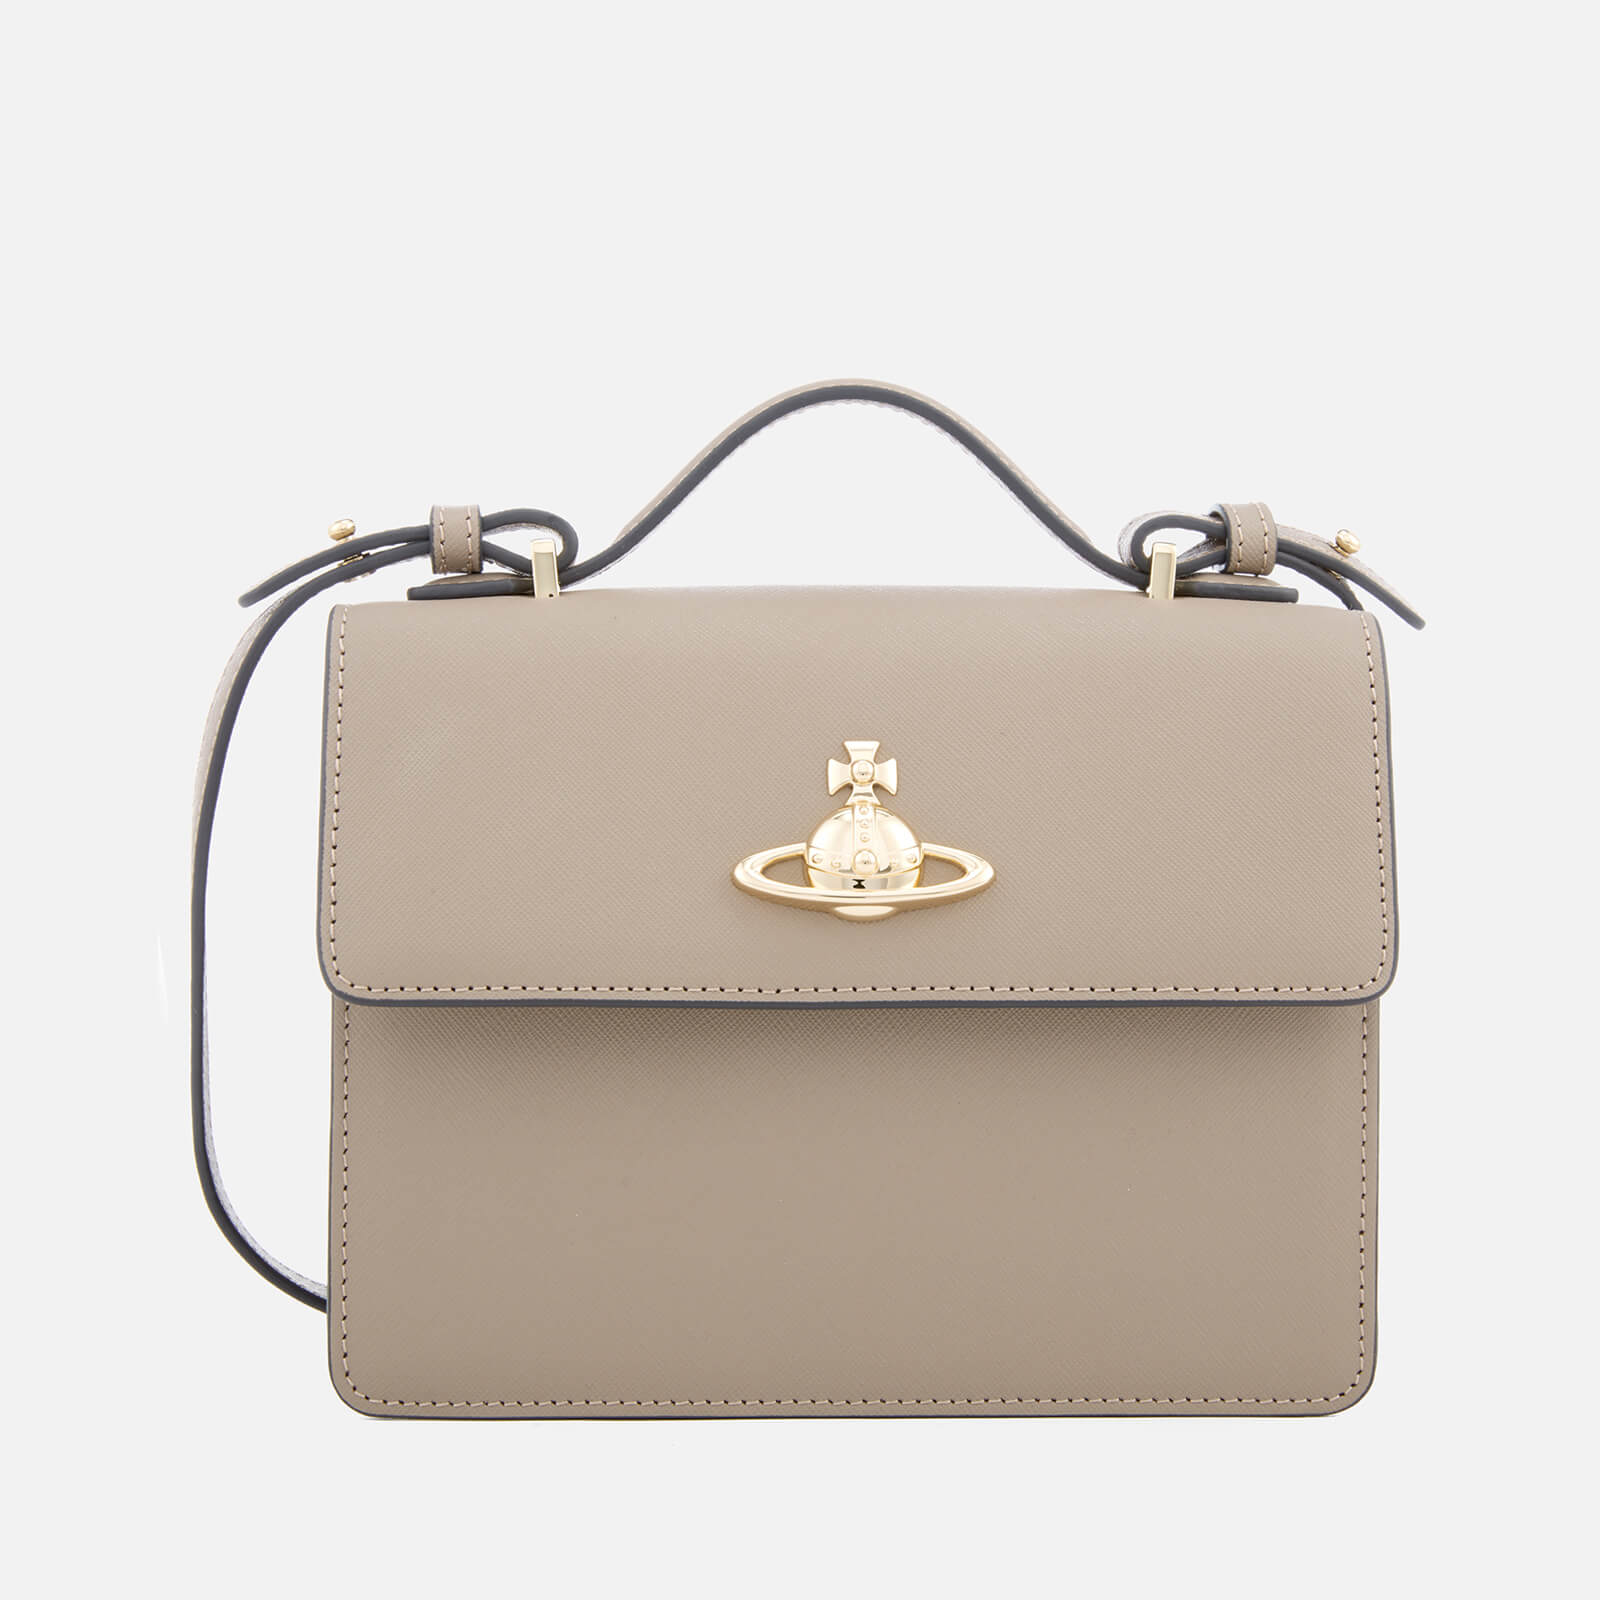 610e95bb72cb Vivienne Westwood Women's Pimlico Shoulder Bag - Taupe - Free UK Delivery  over £50